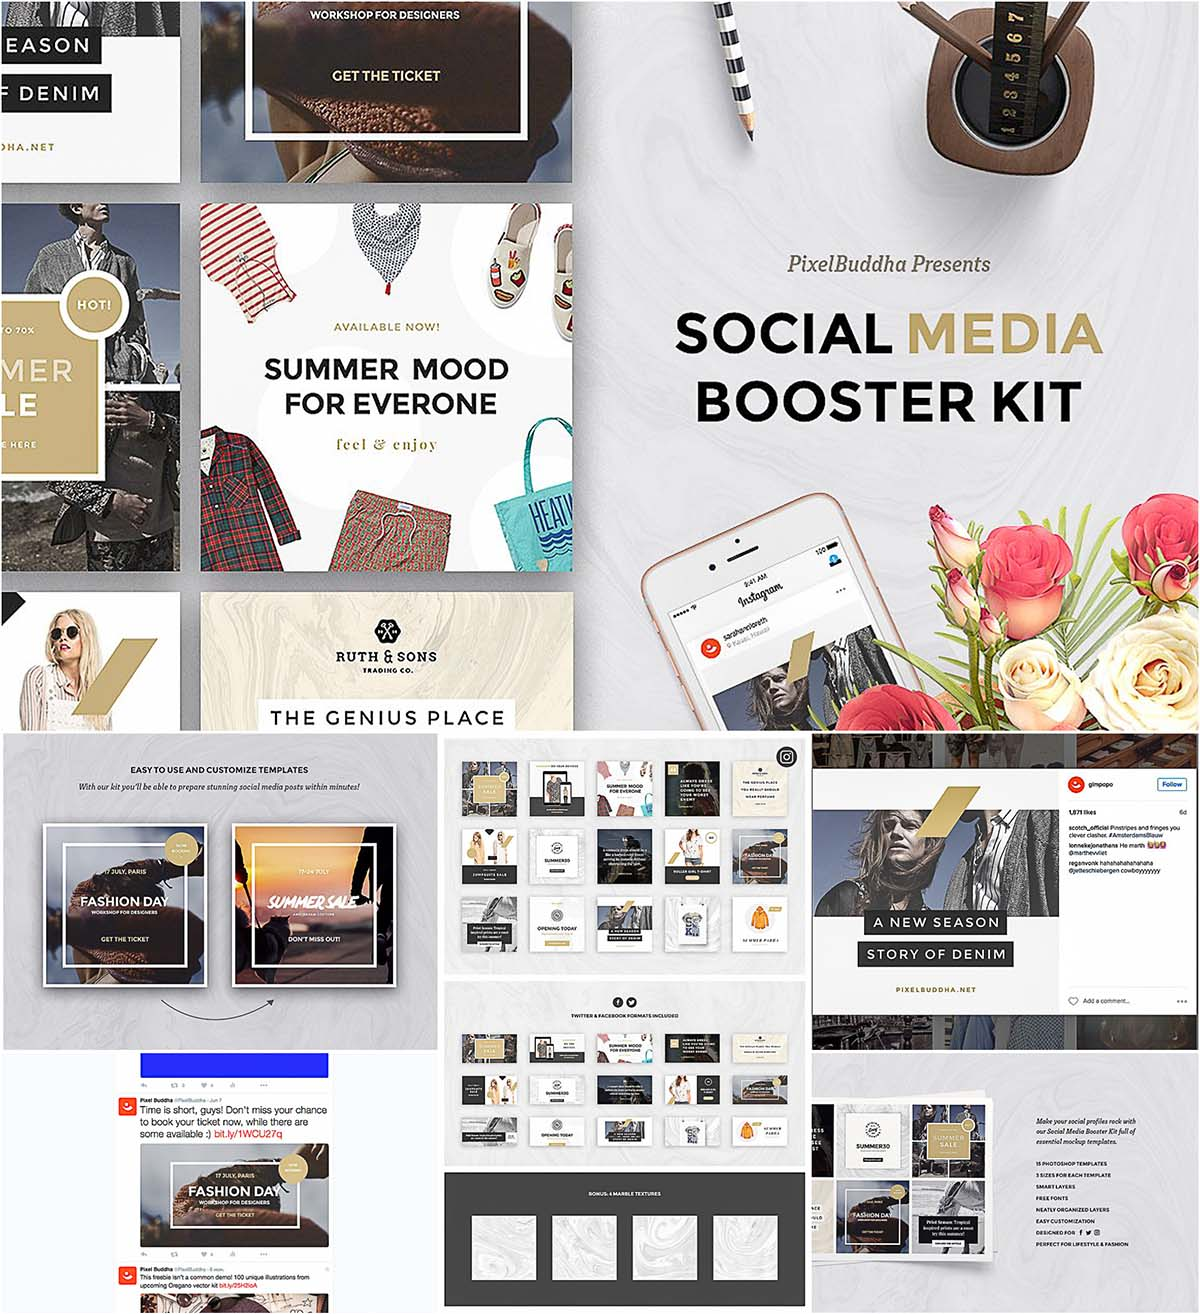 Social media booster kit free download social media booster kit pronofoot35fo Image collections